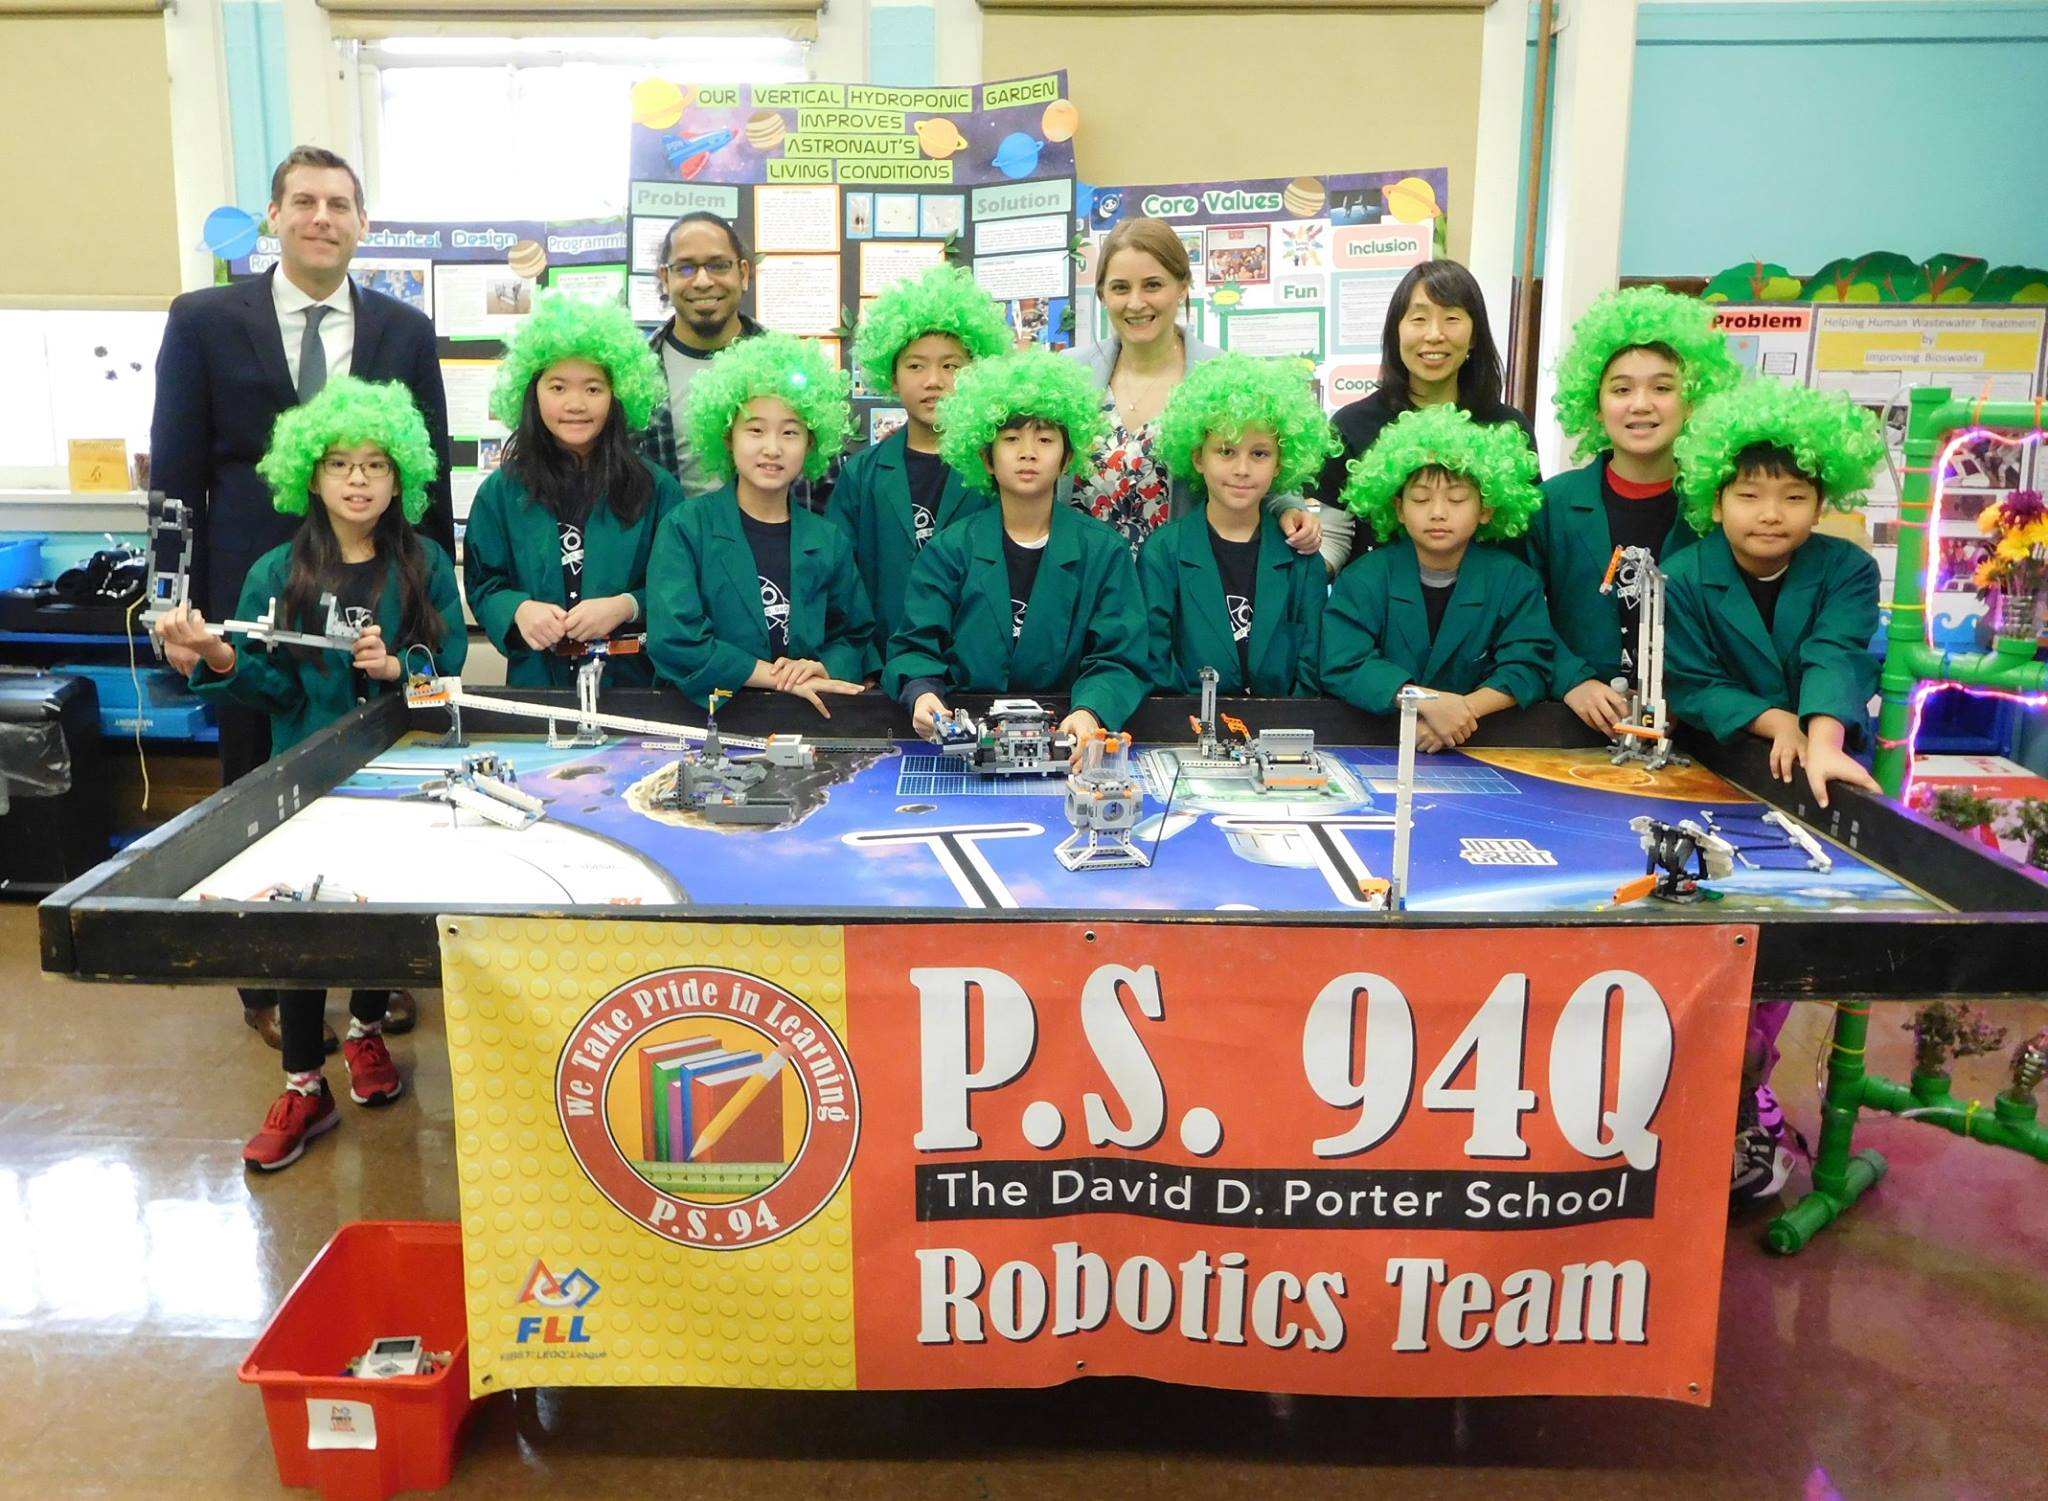 On January 25, 2019, Assemblyman Braunstein visited PS 94 in Little Neck and attended a presentation by the school's LEGO Robotics team, the RoboPandas.